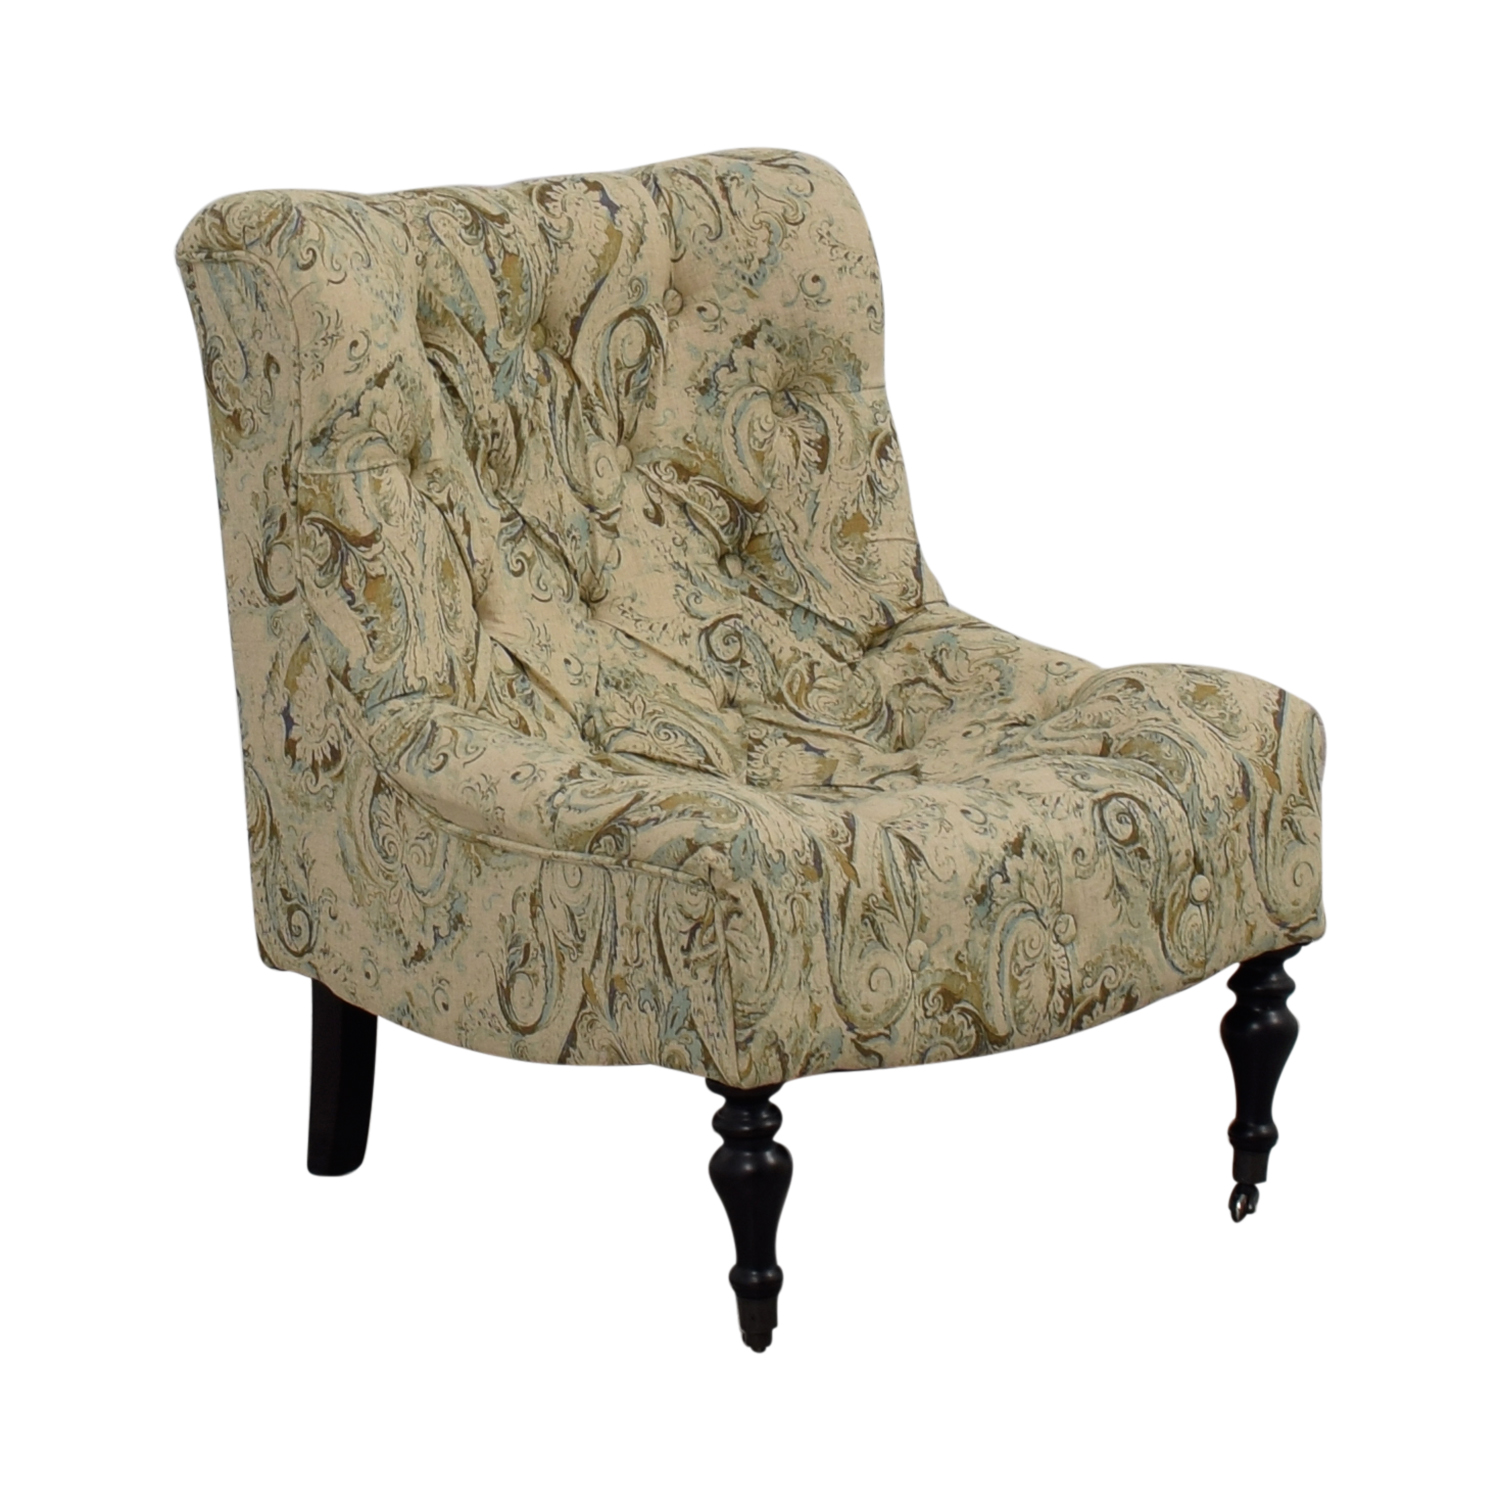 Genial ... Buy Bombay Beige With Blue And Green Upholstered Accent Chair Bombay  Chairs ...